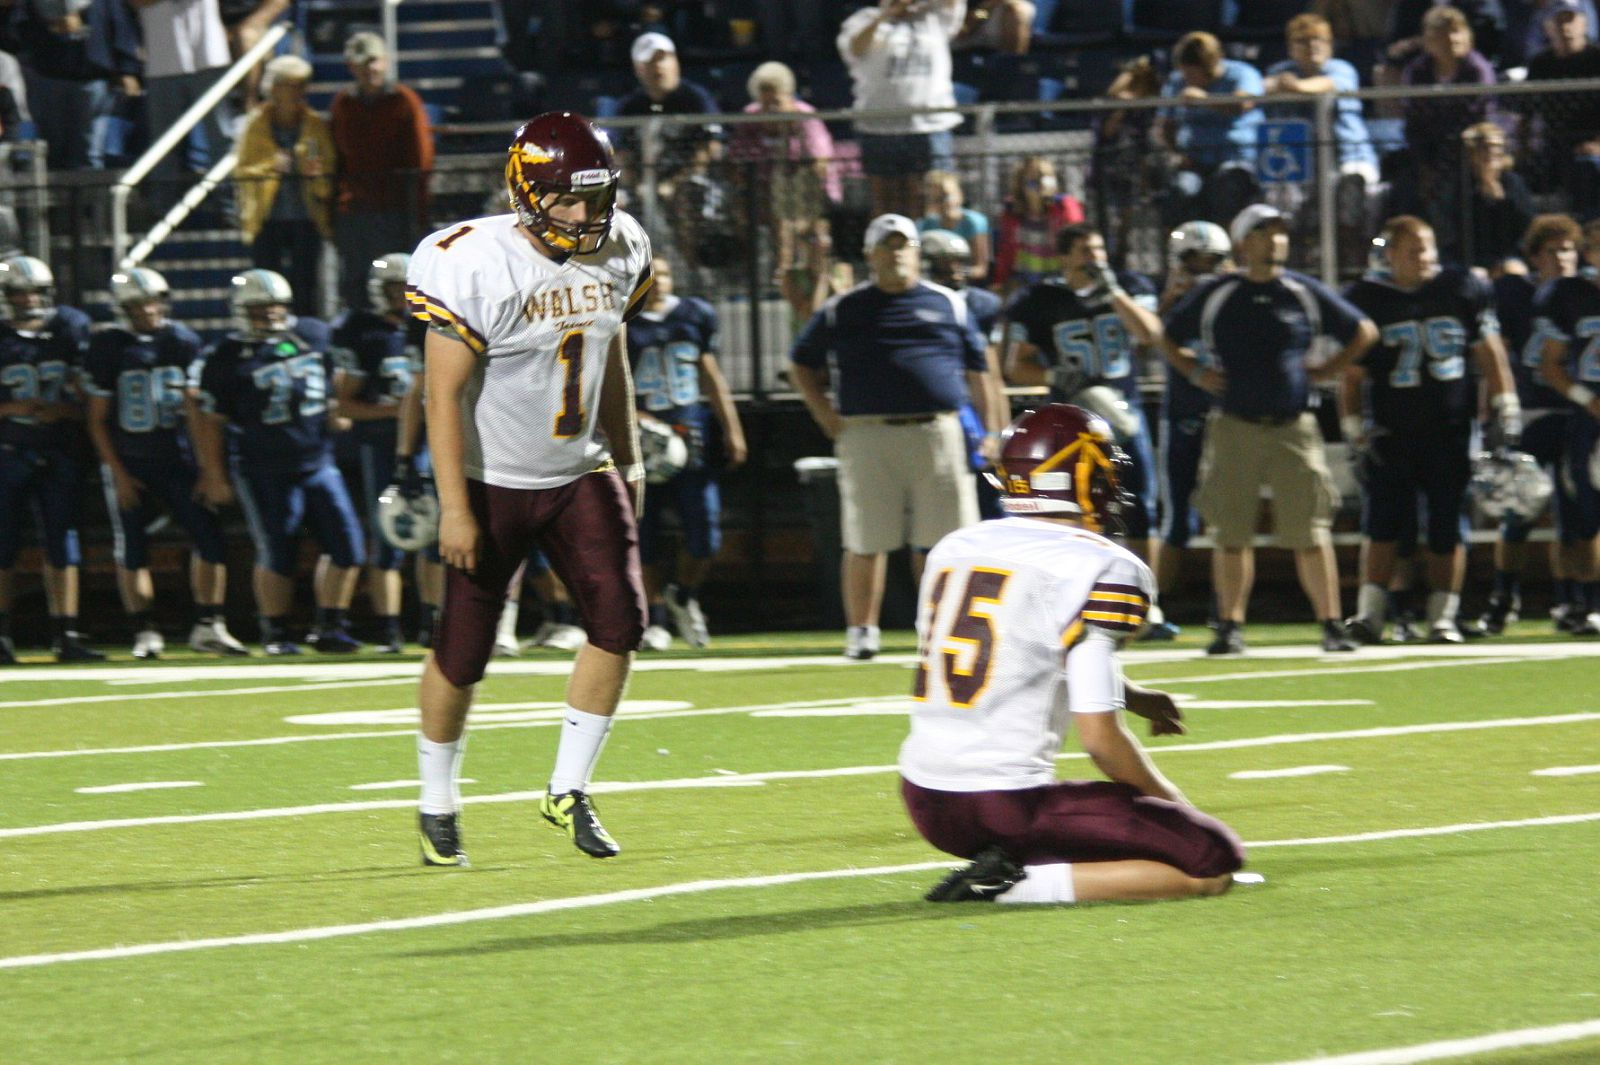 Ross Martin, the top HS placekicker in the country, hits the game-winning FG in his season opener.